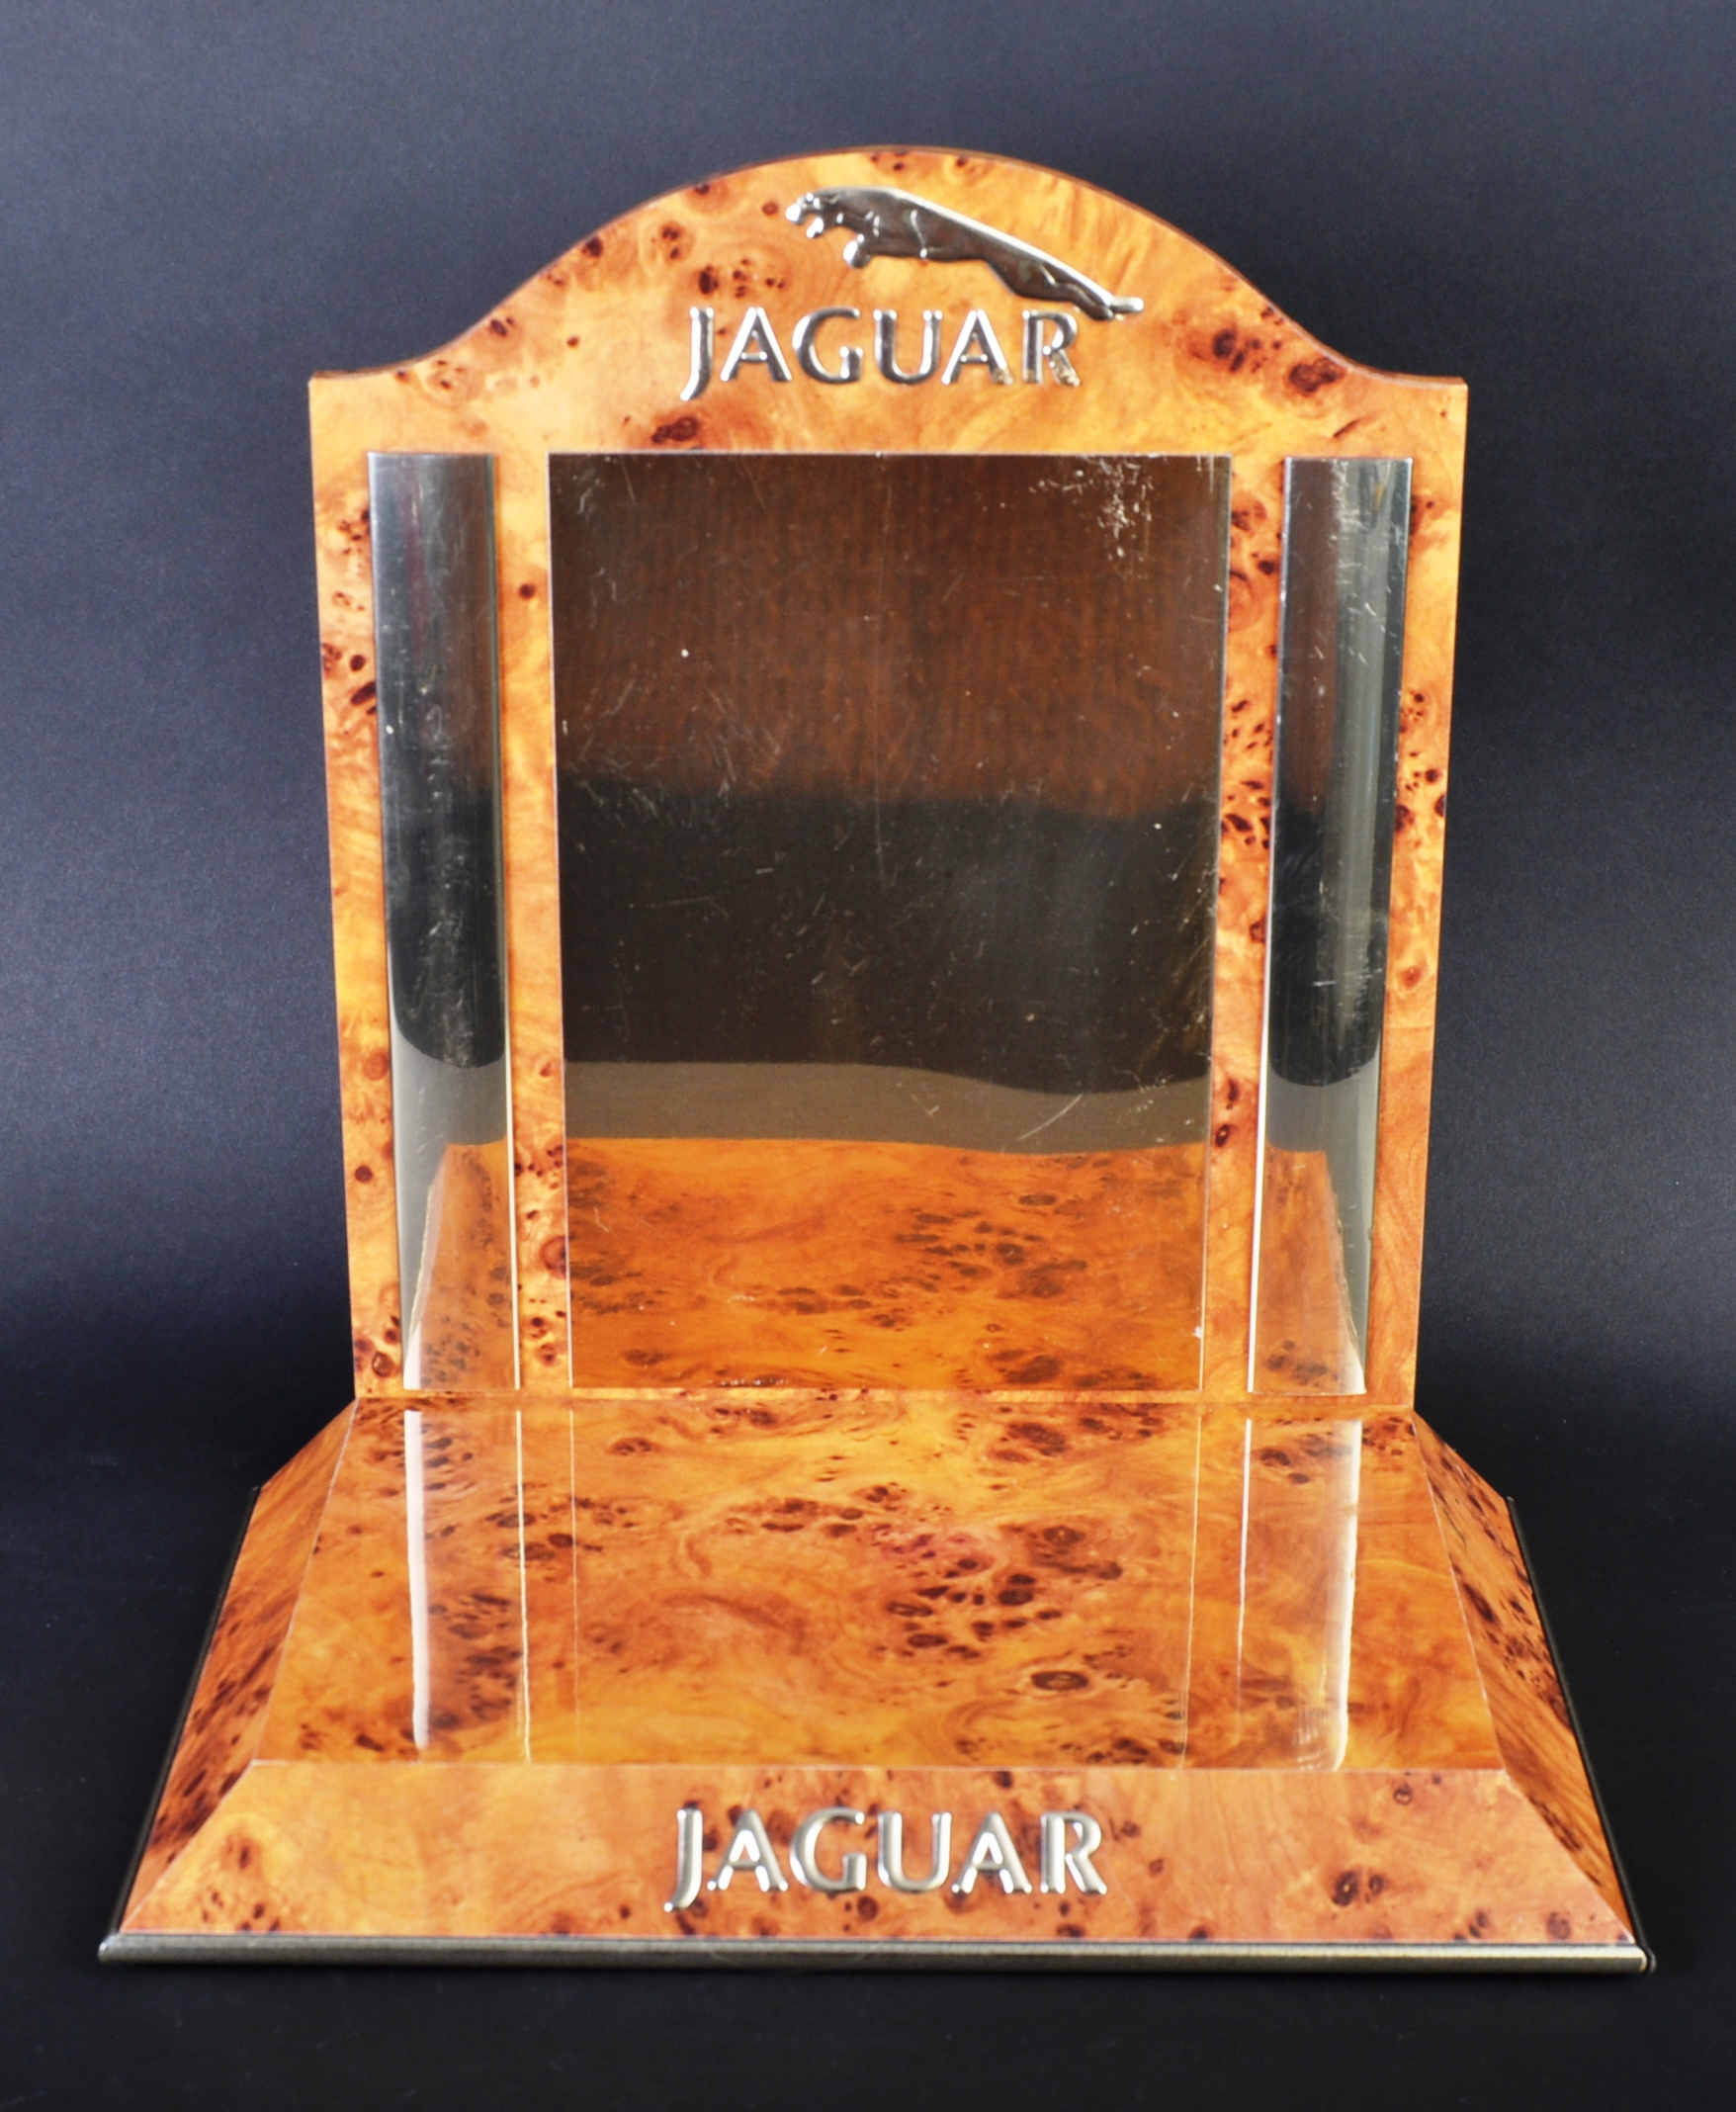 JAGUAR - ORIGINAL VINTAGE PERFUME / AFTERSHAVE SHOW DISPLAY - Image 2 of 6